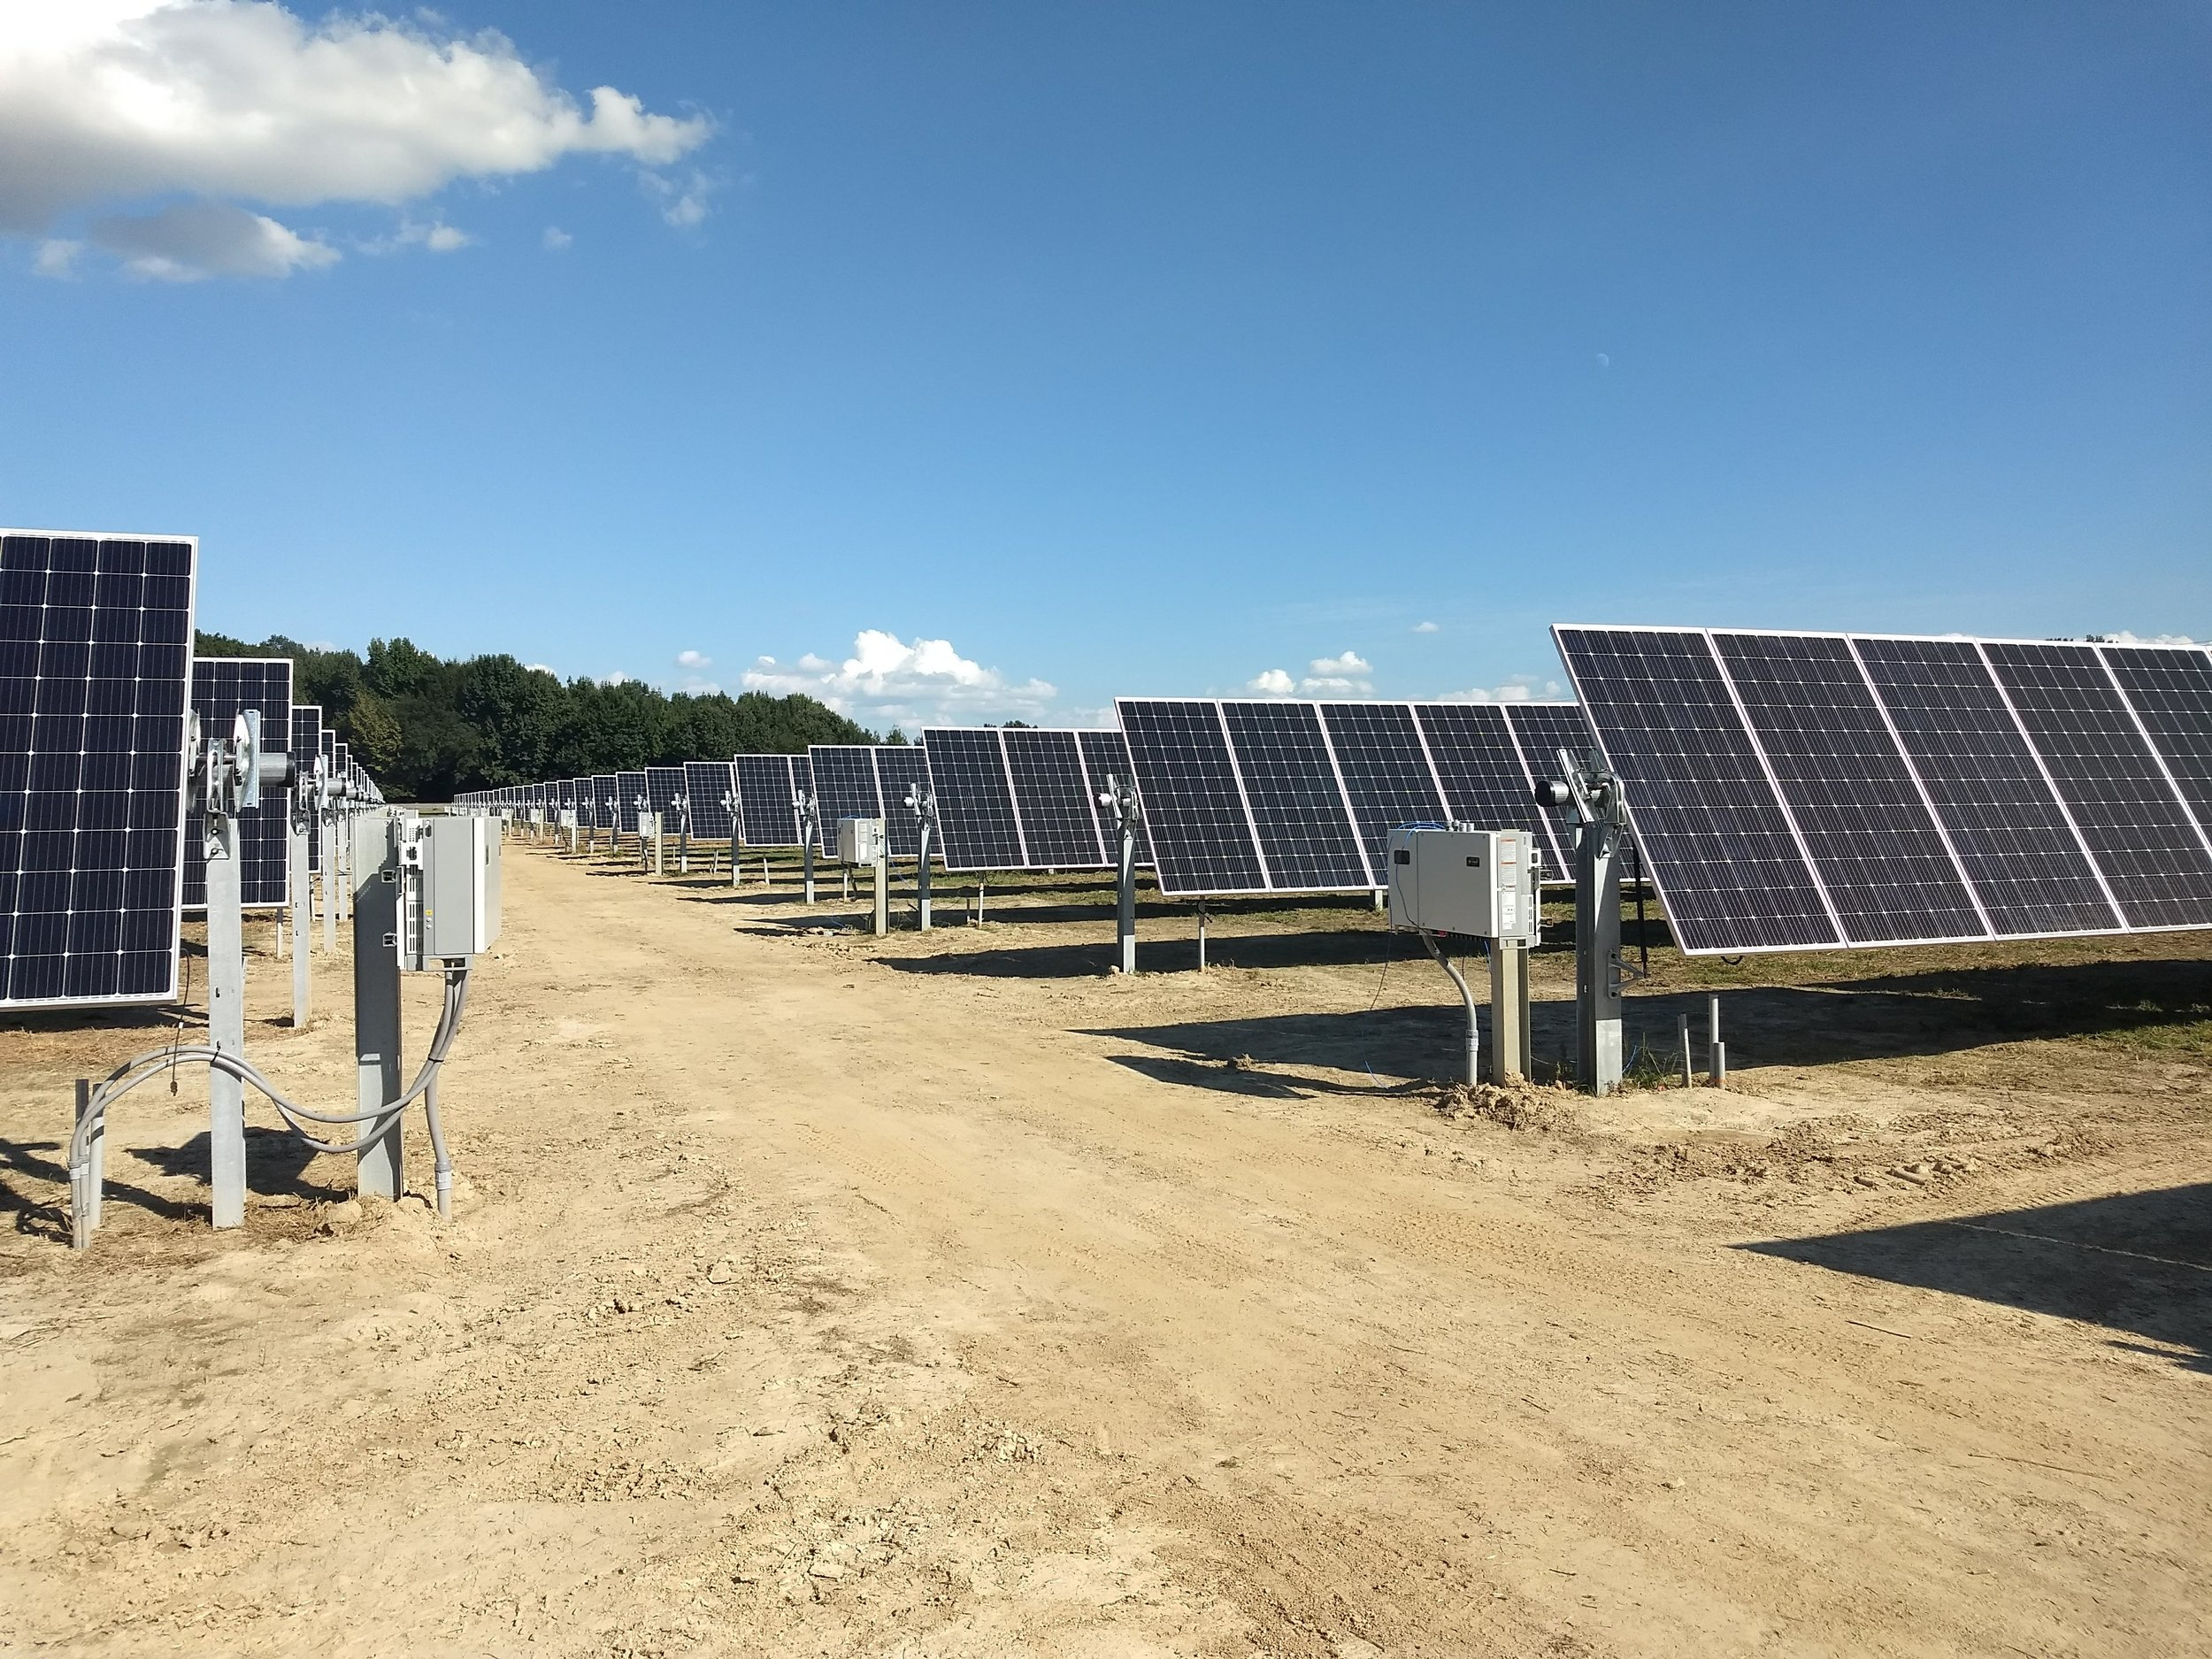 Craighead Electric Cooperative - 1.4 MW | Single-Axis Tracking System